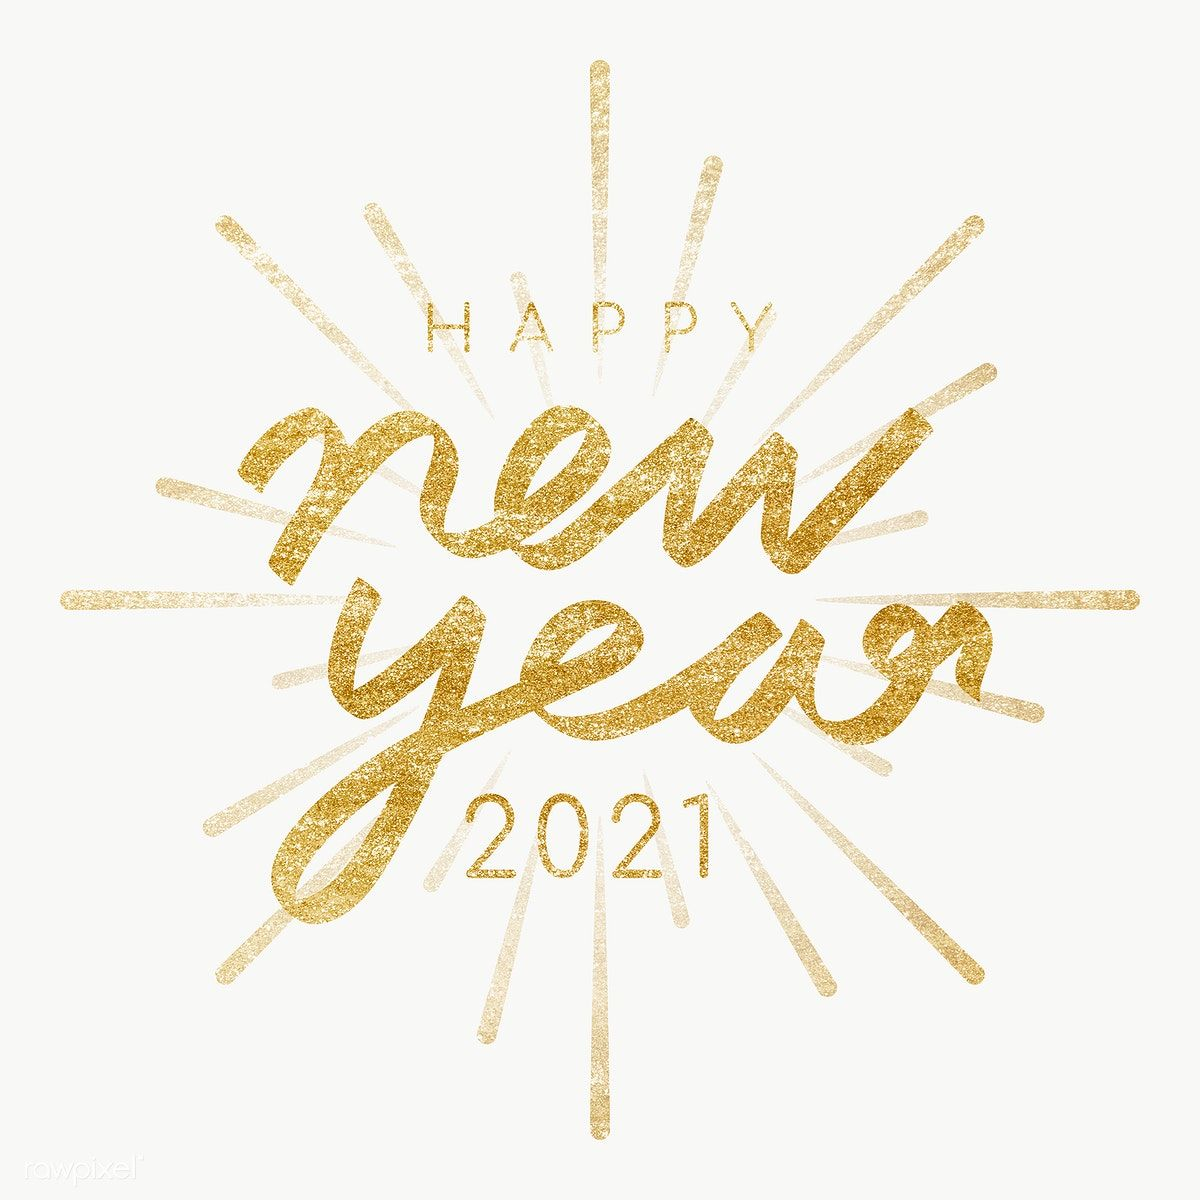 Happy New Year 2021 Transparent Png Free Image By Rawpixel Com Ningzk V Happy New Year Png Happy New Year Pictures New Year Images 2021 golden happy new year background